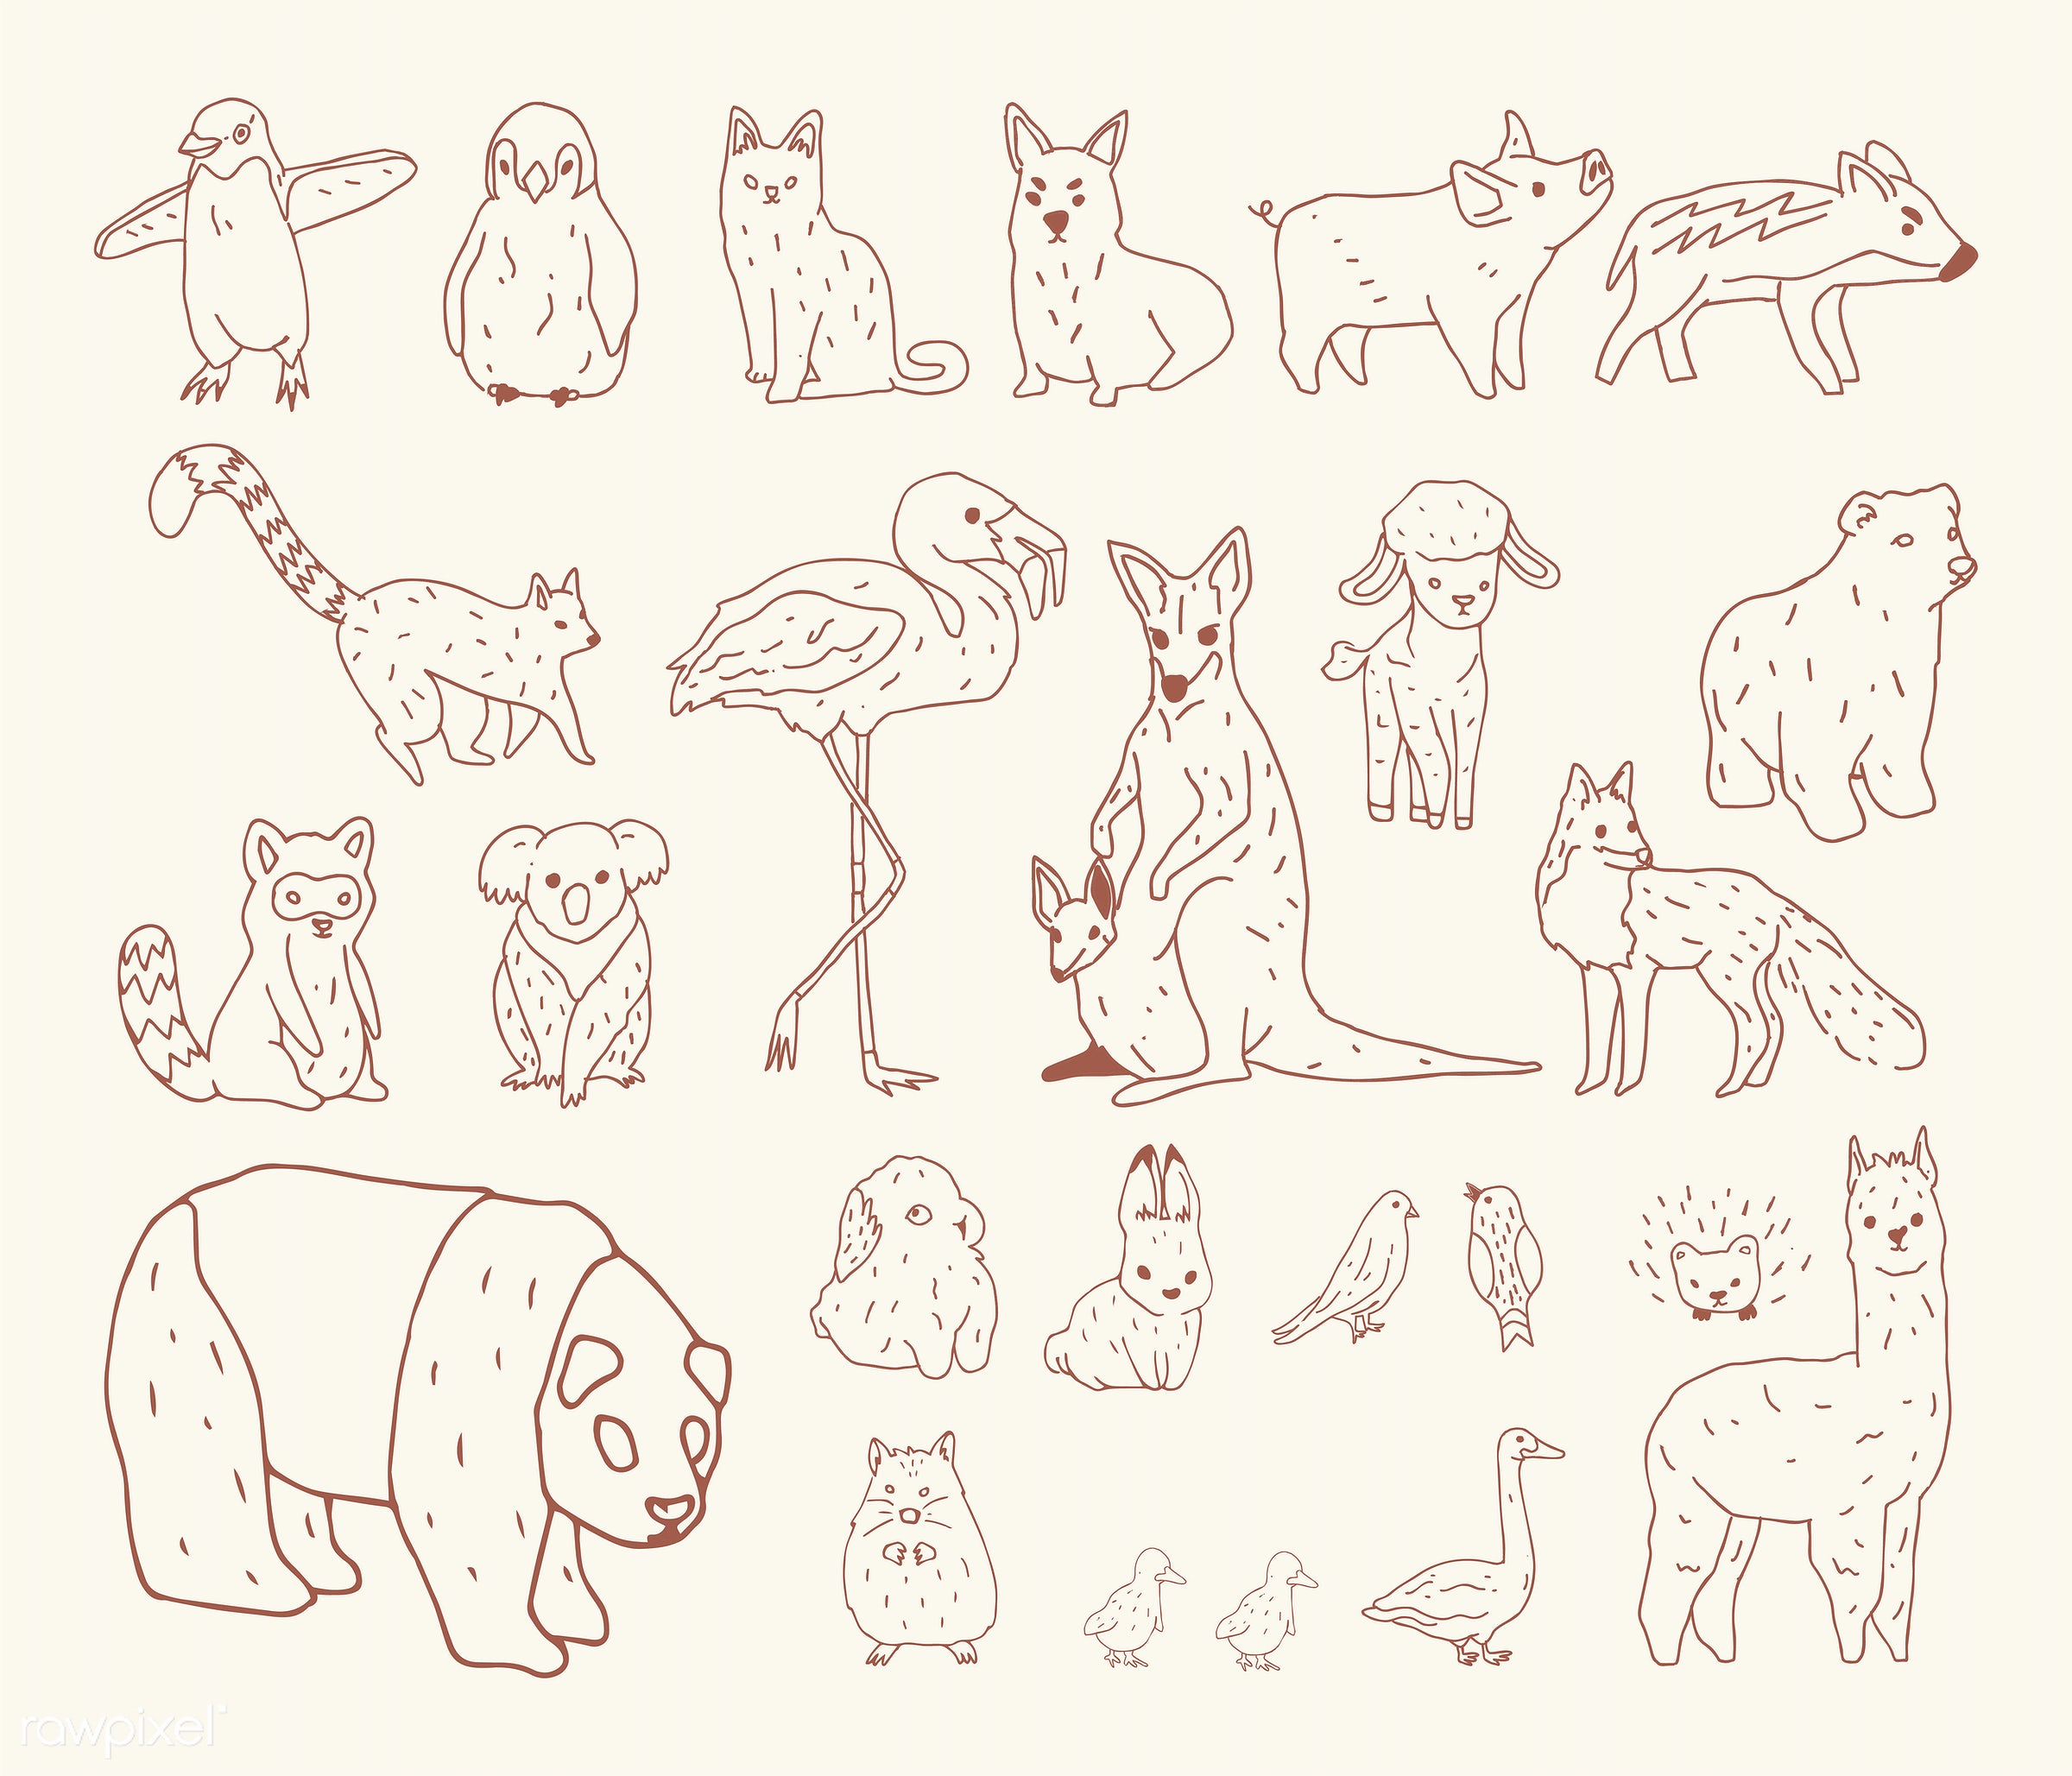 Vector of various types of animals - animals, cartoon, character, collection, doodle, drawing, graphic, illustration,...